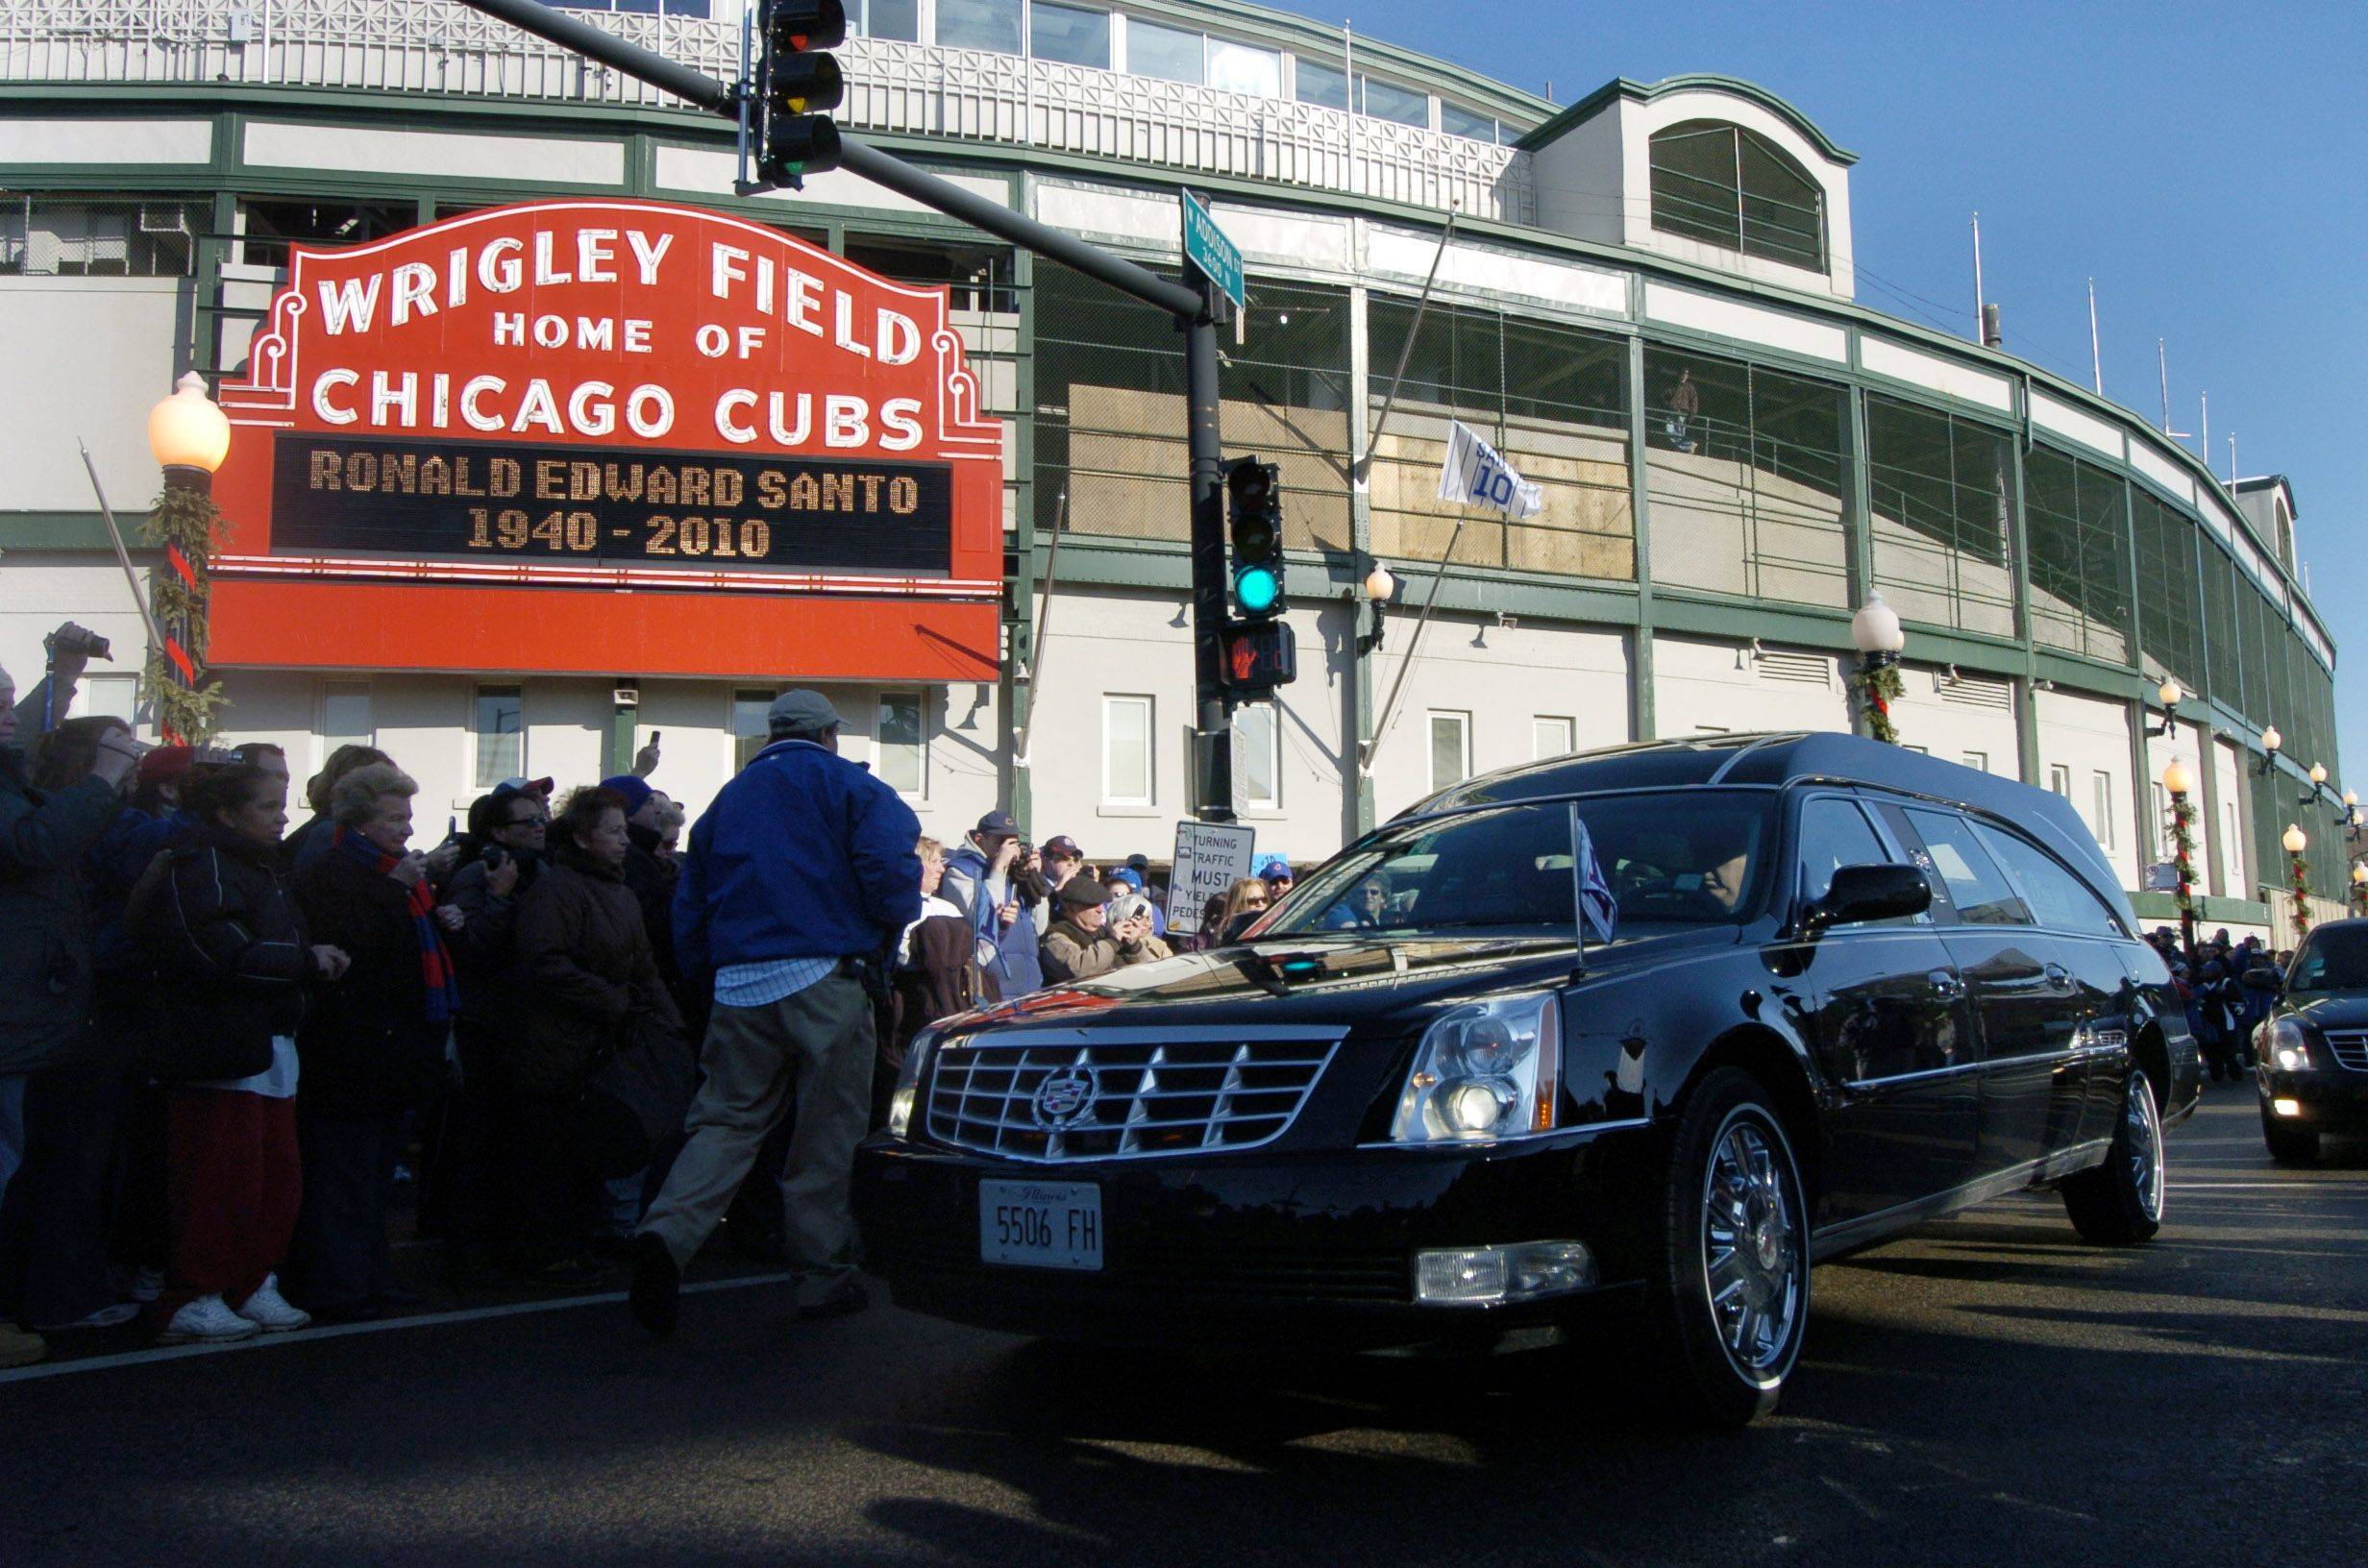 Chicago Cubs great and broadcaster Ron Santo's funeral procession pauses in front of Wrigley Field Friday.